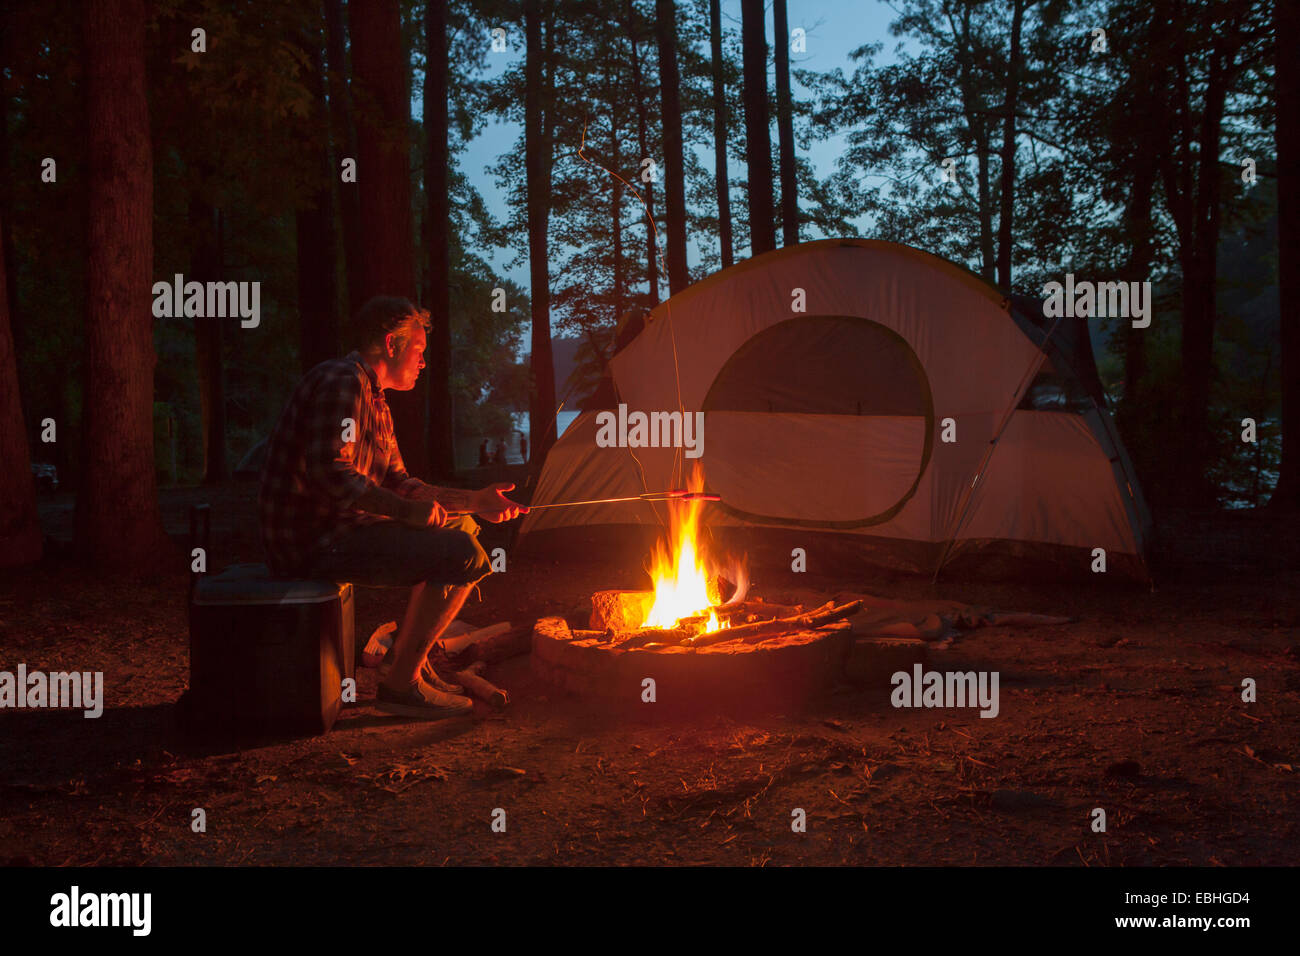 Man cooking on campfire in forest at night, Arkansas, USA - Stock Image